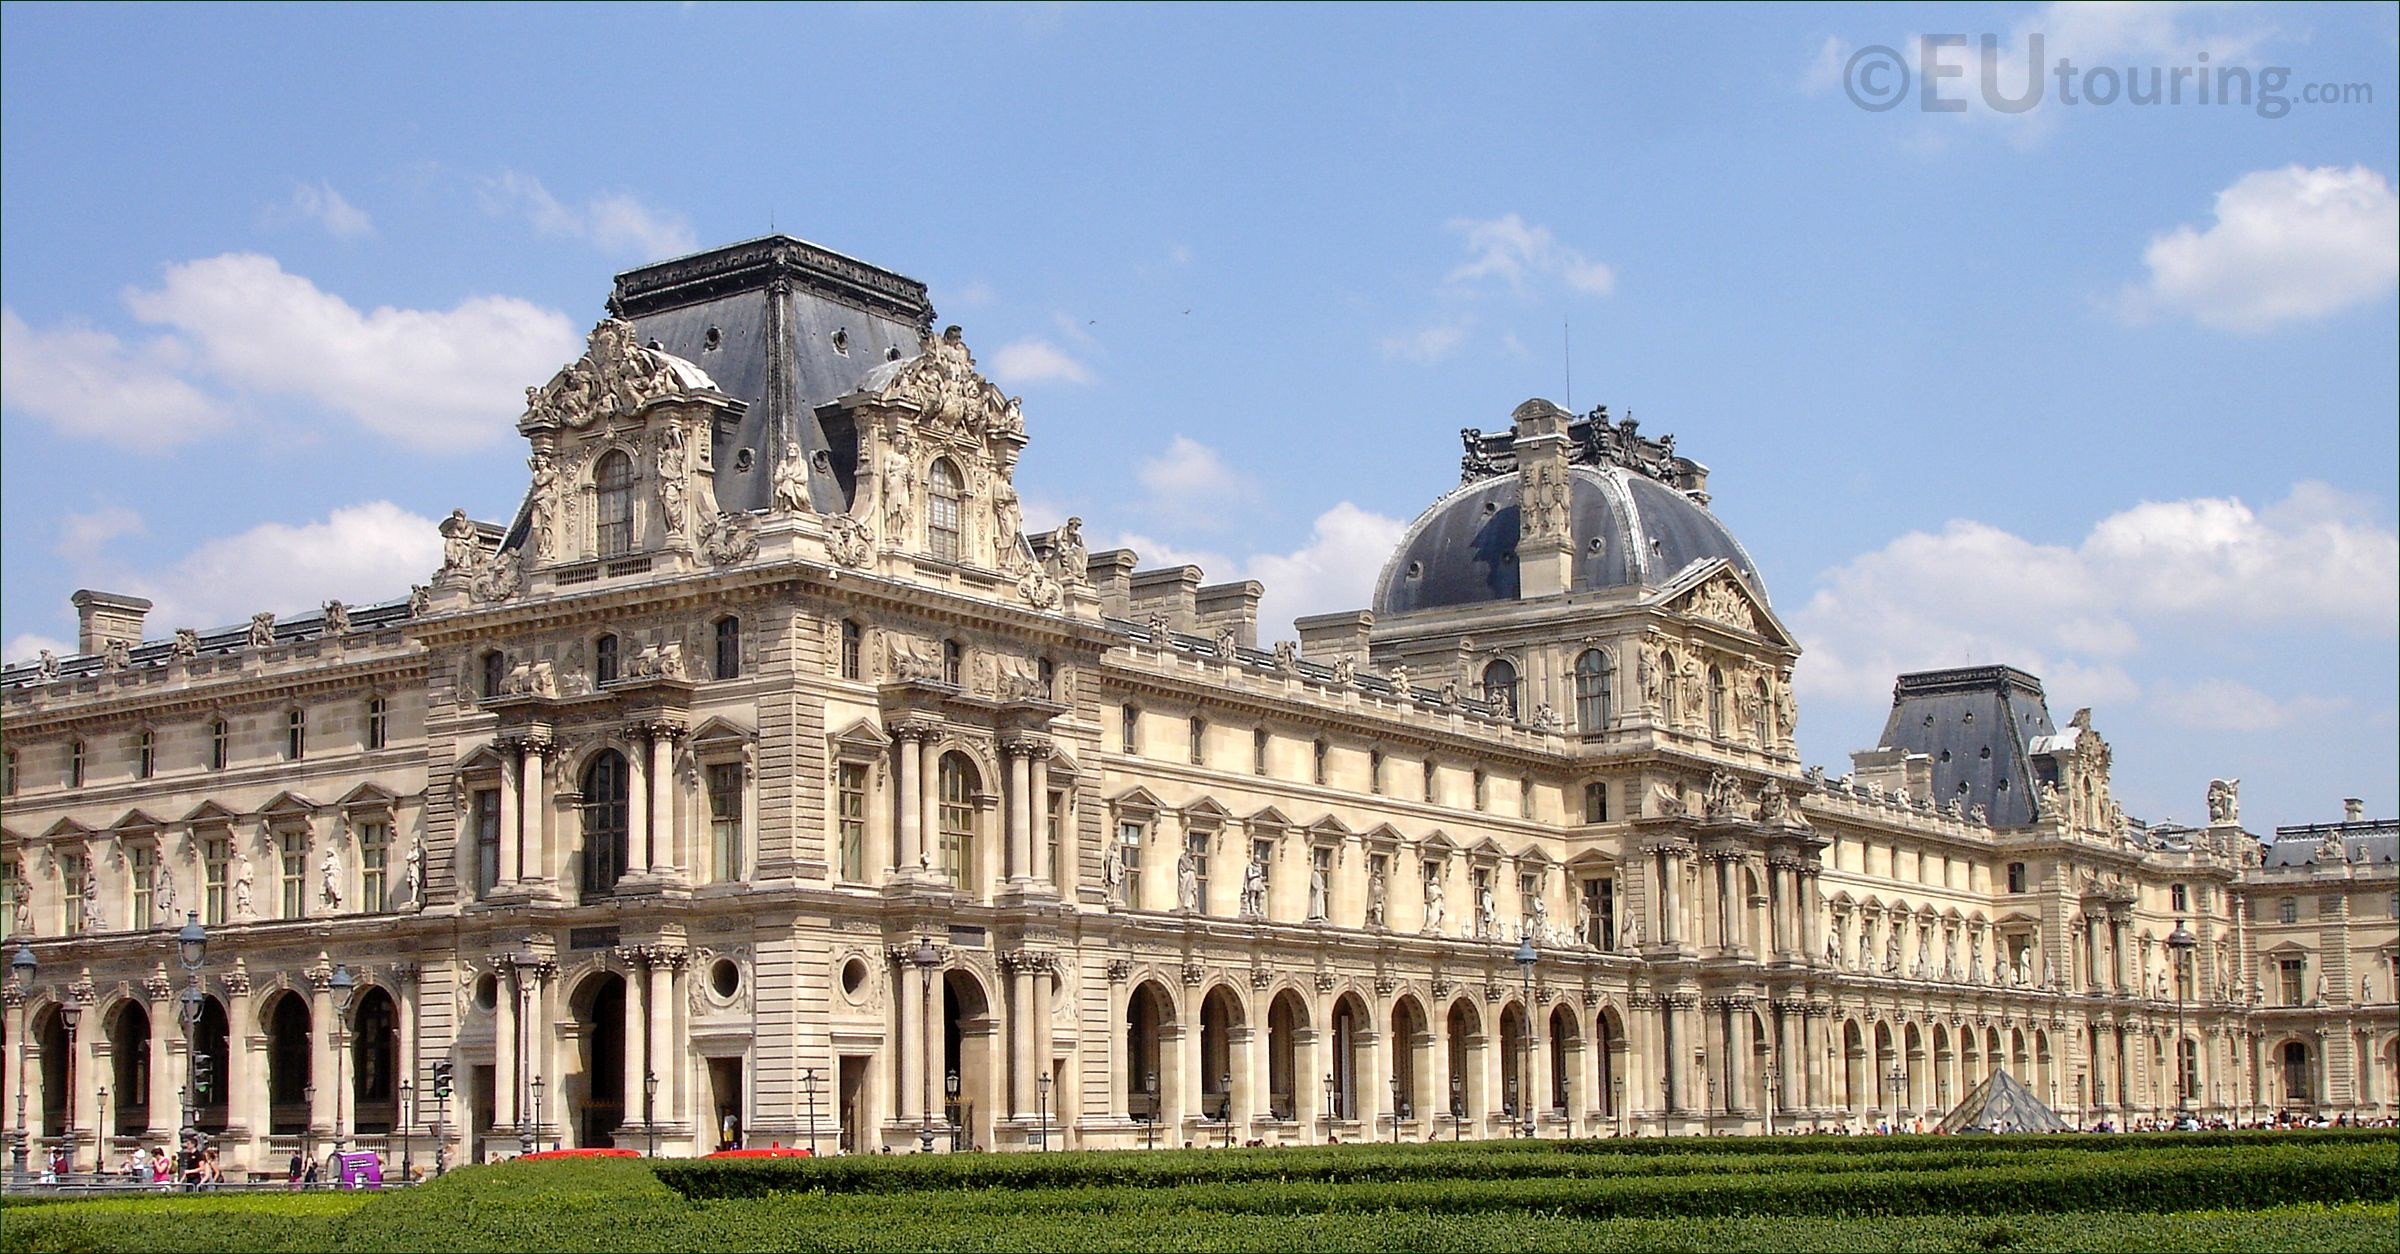 Wing Of Louvre Presidential Palaces Palace Museum Architecture